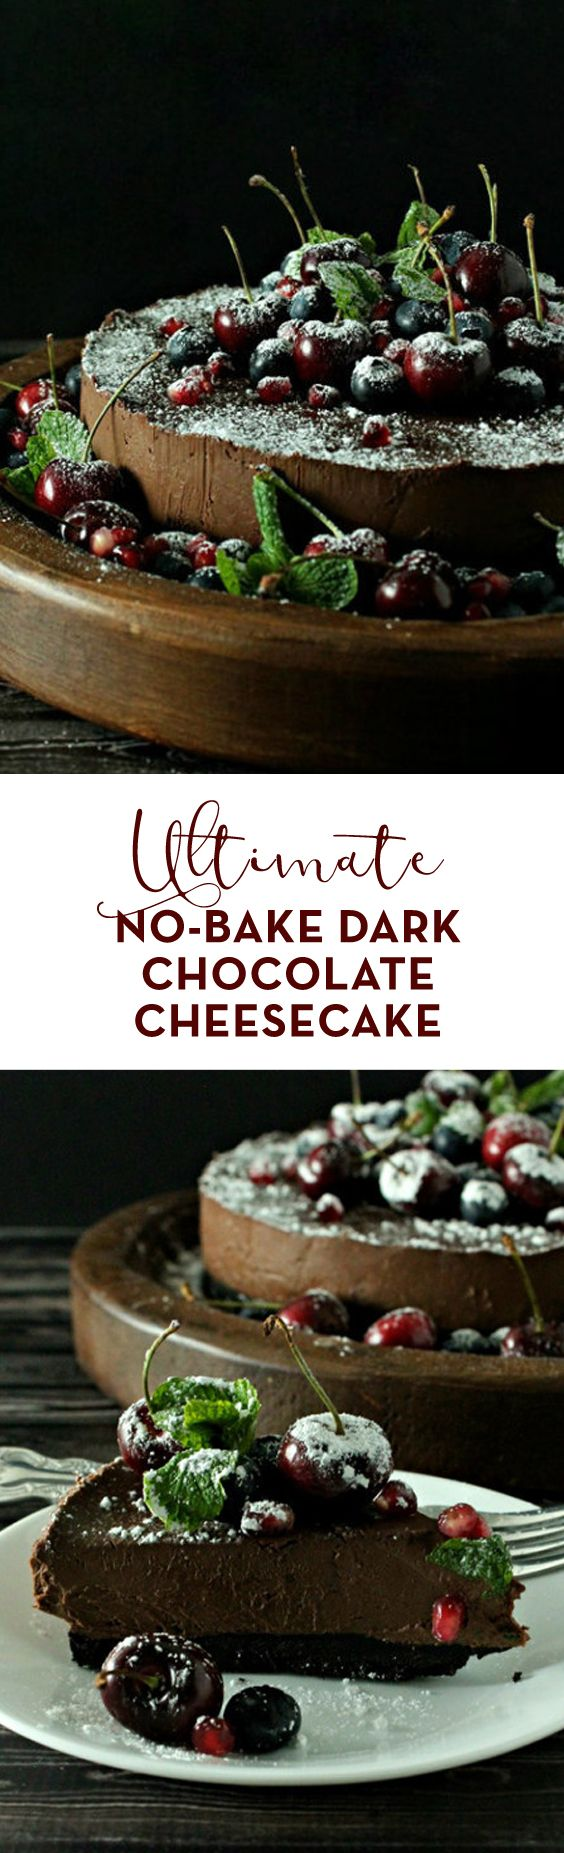 Sinfully rich & decadent, this Ultimate No-Bake Dark Chocolate Cheesecake is THE most have, no-fuss dessert of the holiday season! | Wry Toast Eats